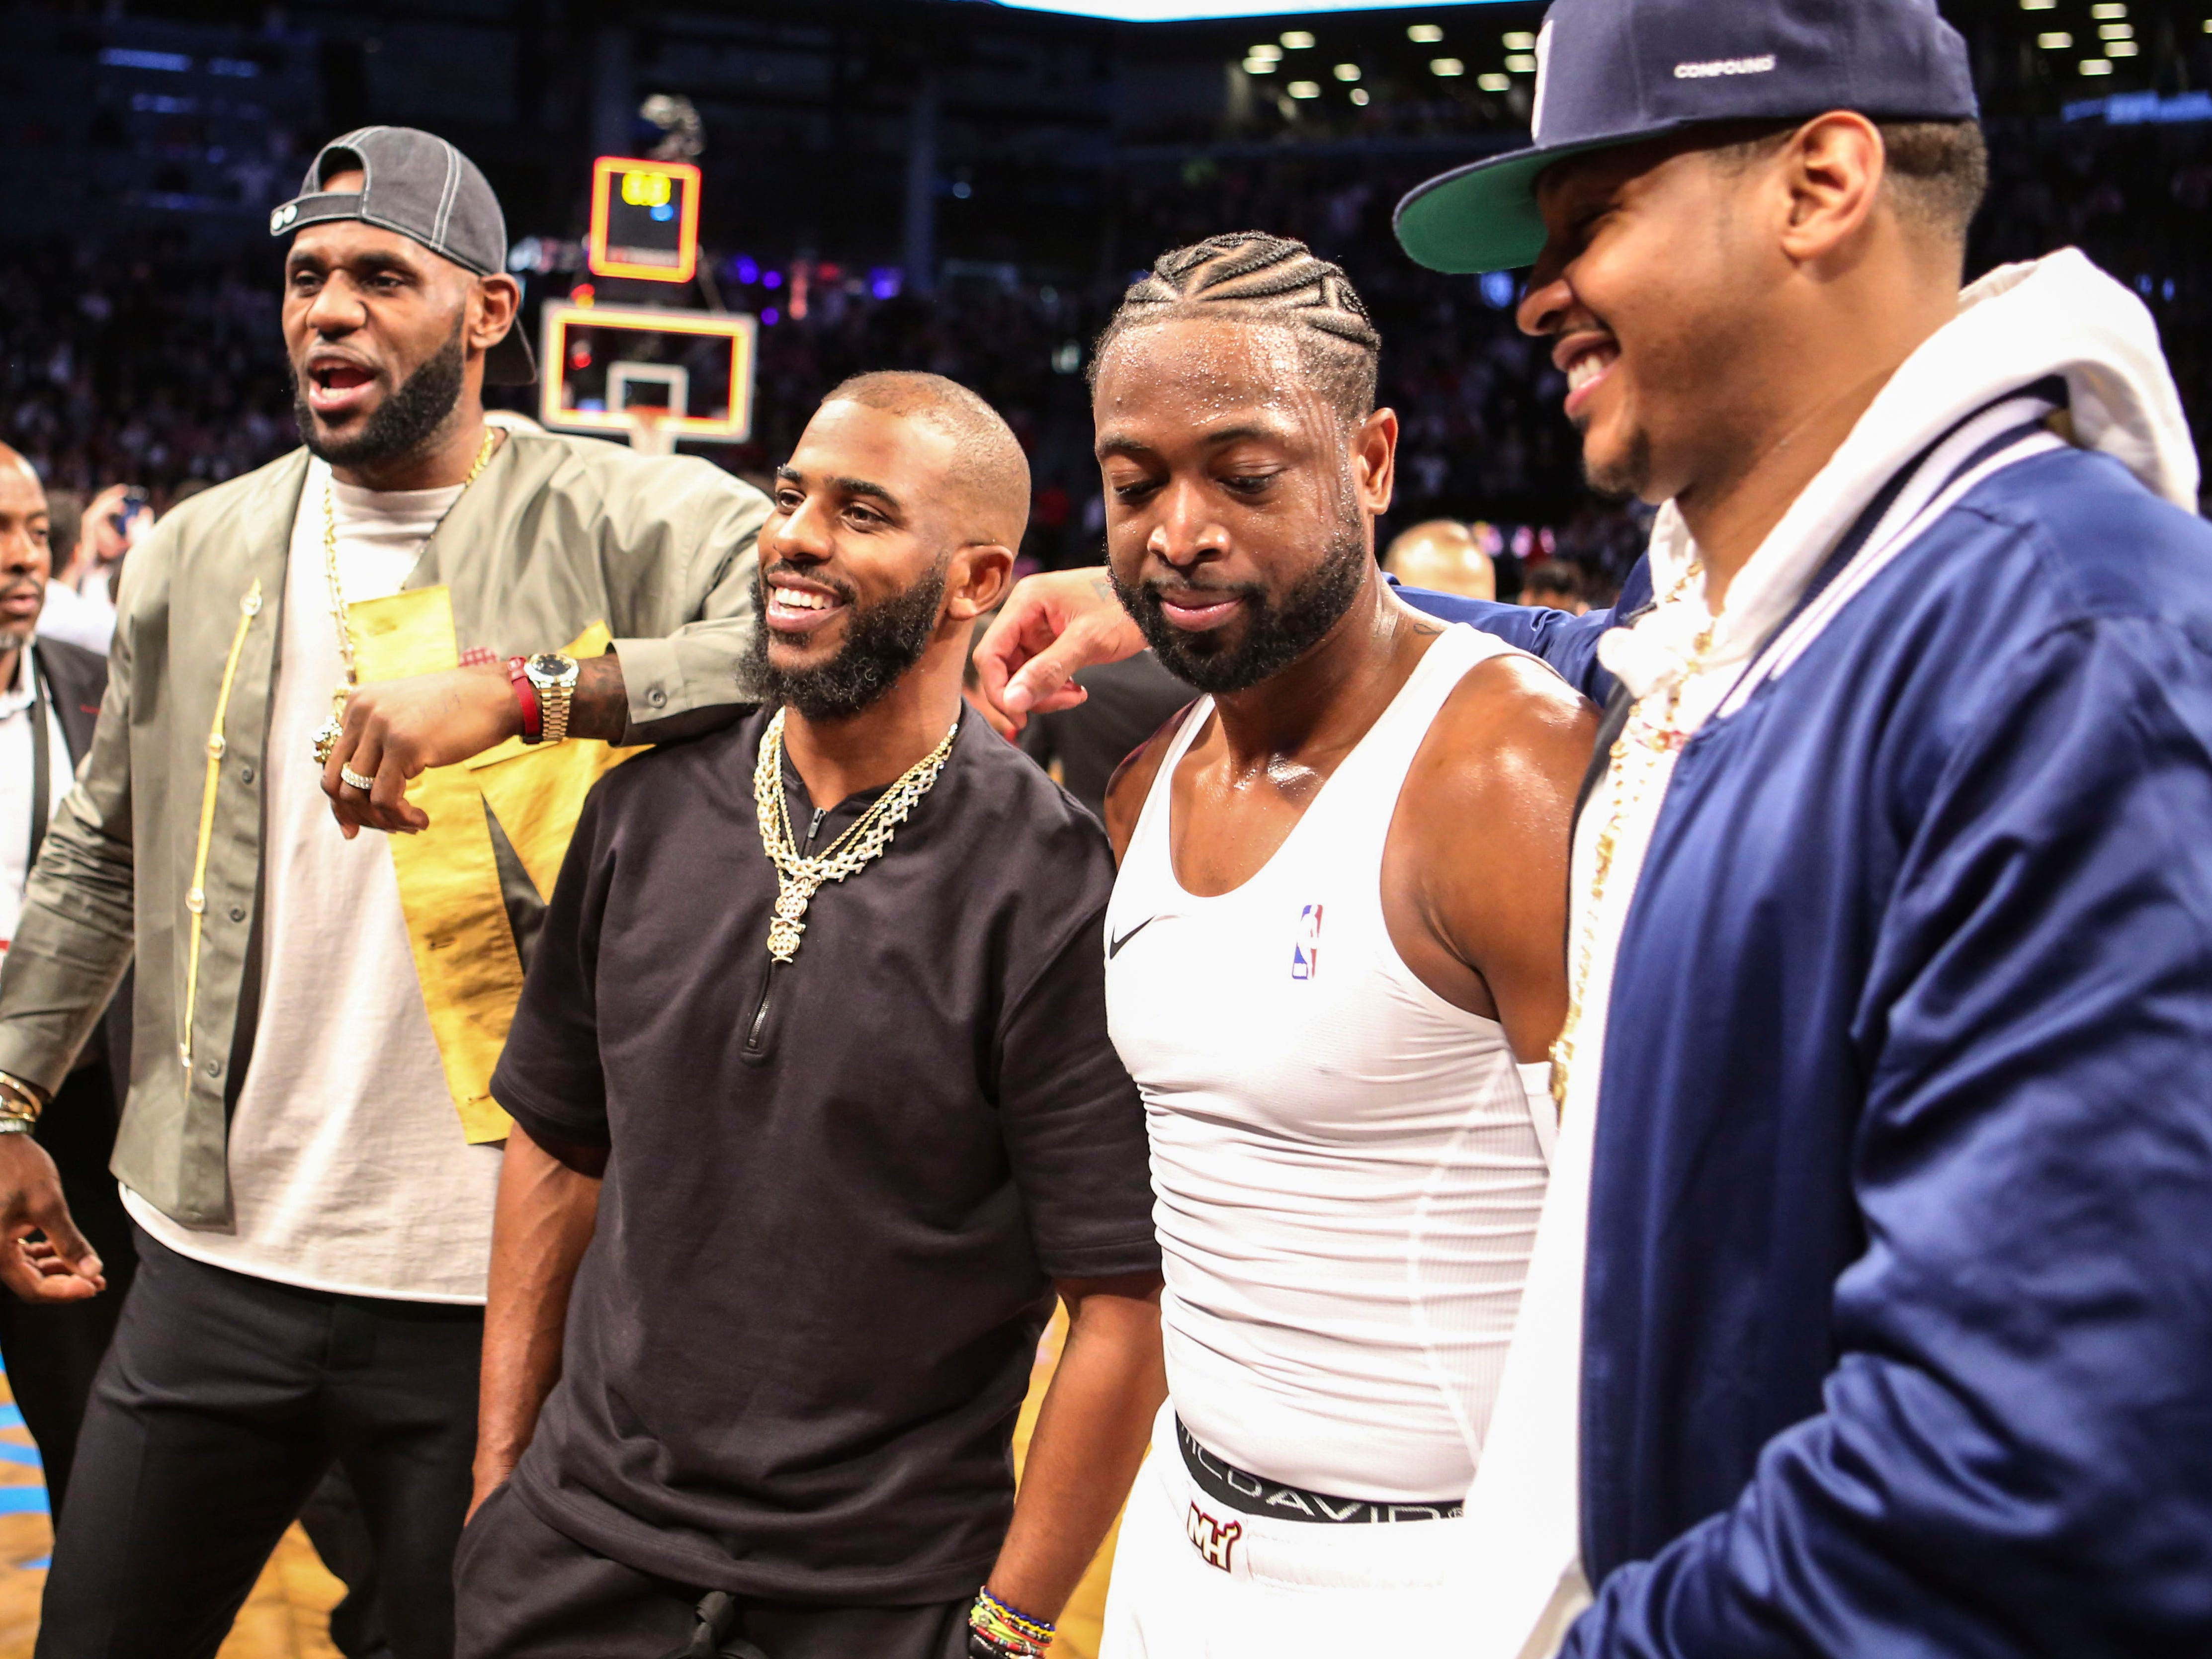 From left, LeBron James, Chris Paul, Dwyane Wade and Carmelo Anthony pose after Wade's final career game in Brooklyn. The retiring Wade went out in style with a triple-double.